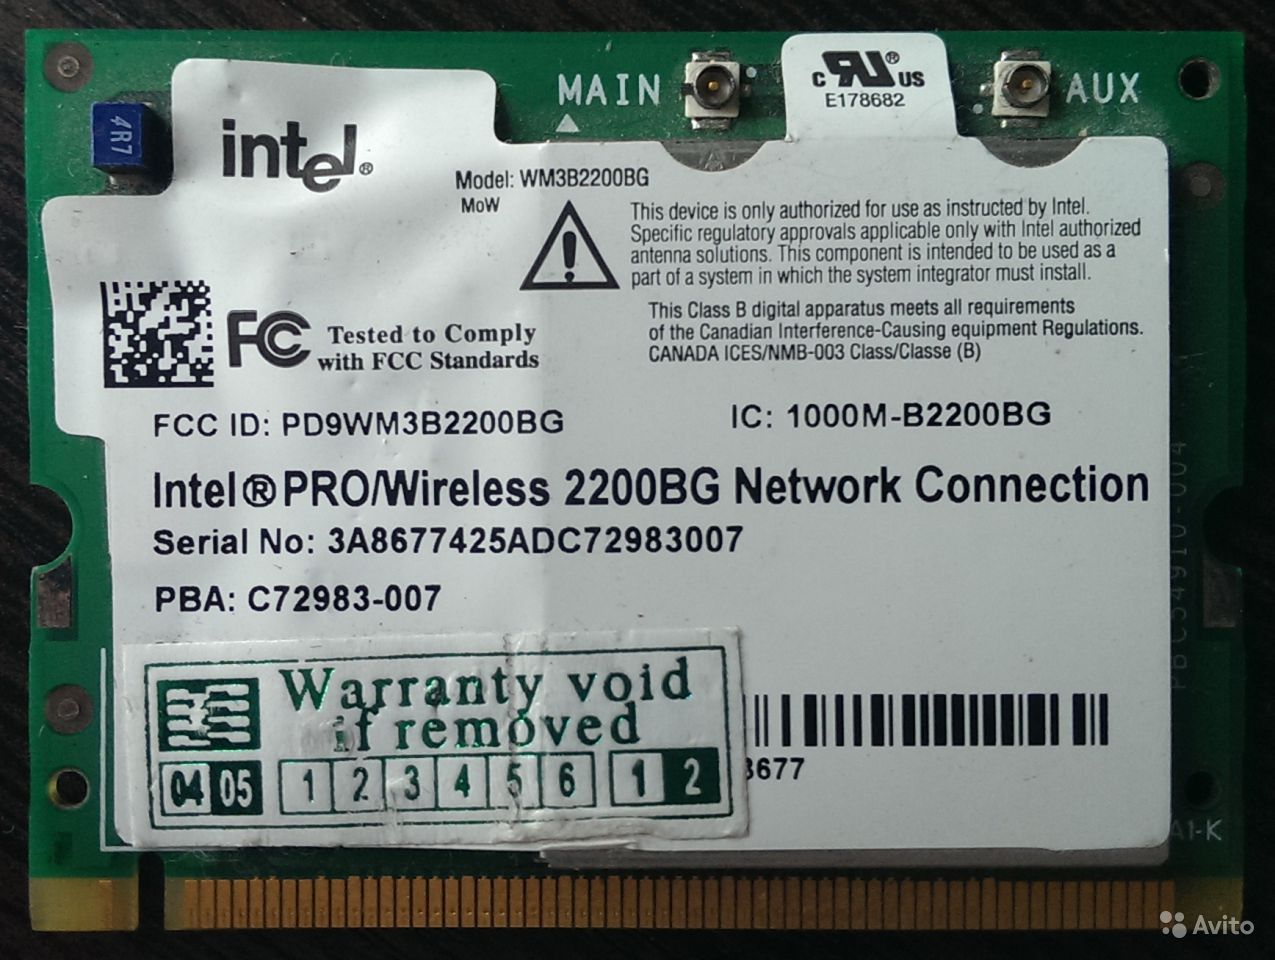 Downloads for Intel PRO/Wireless 2200BG Network Connection